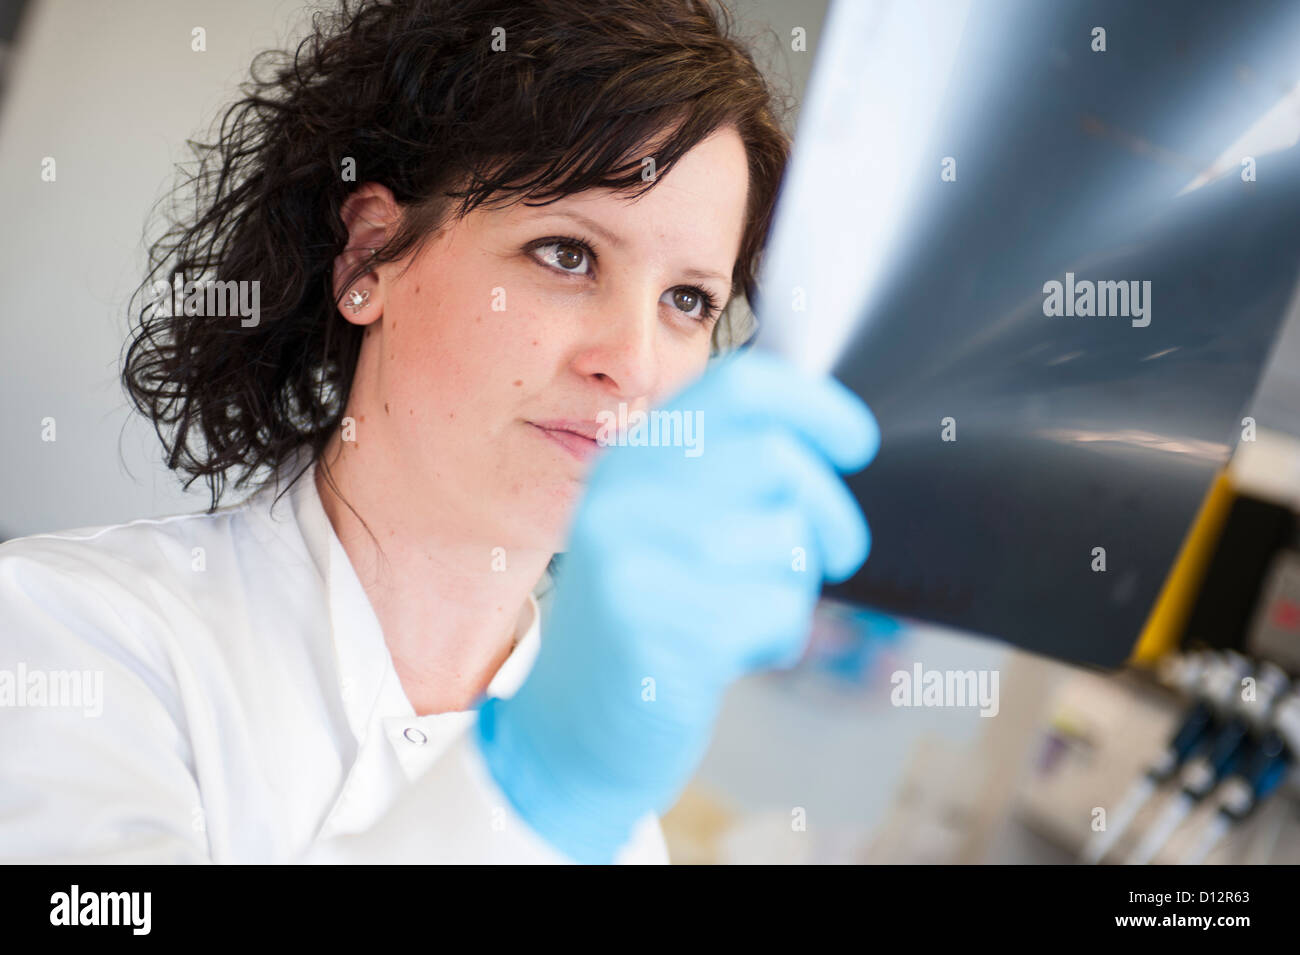 Female scientist holds a DNA autoradiogram for examination in science lab - Stock Image